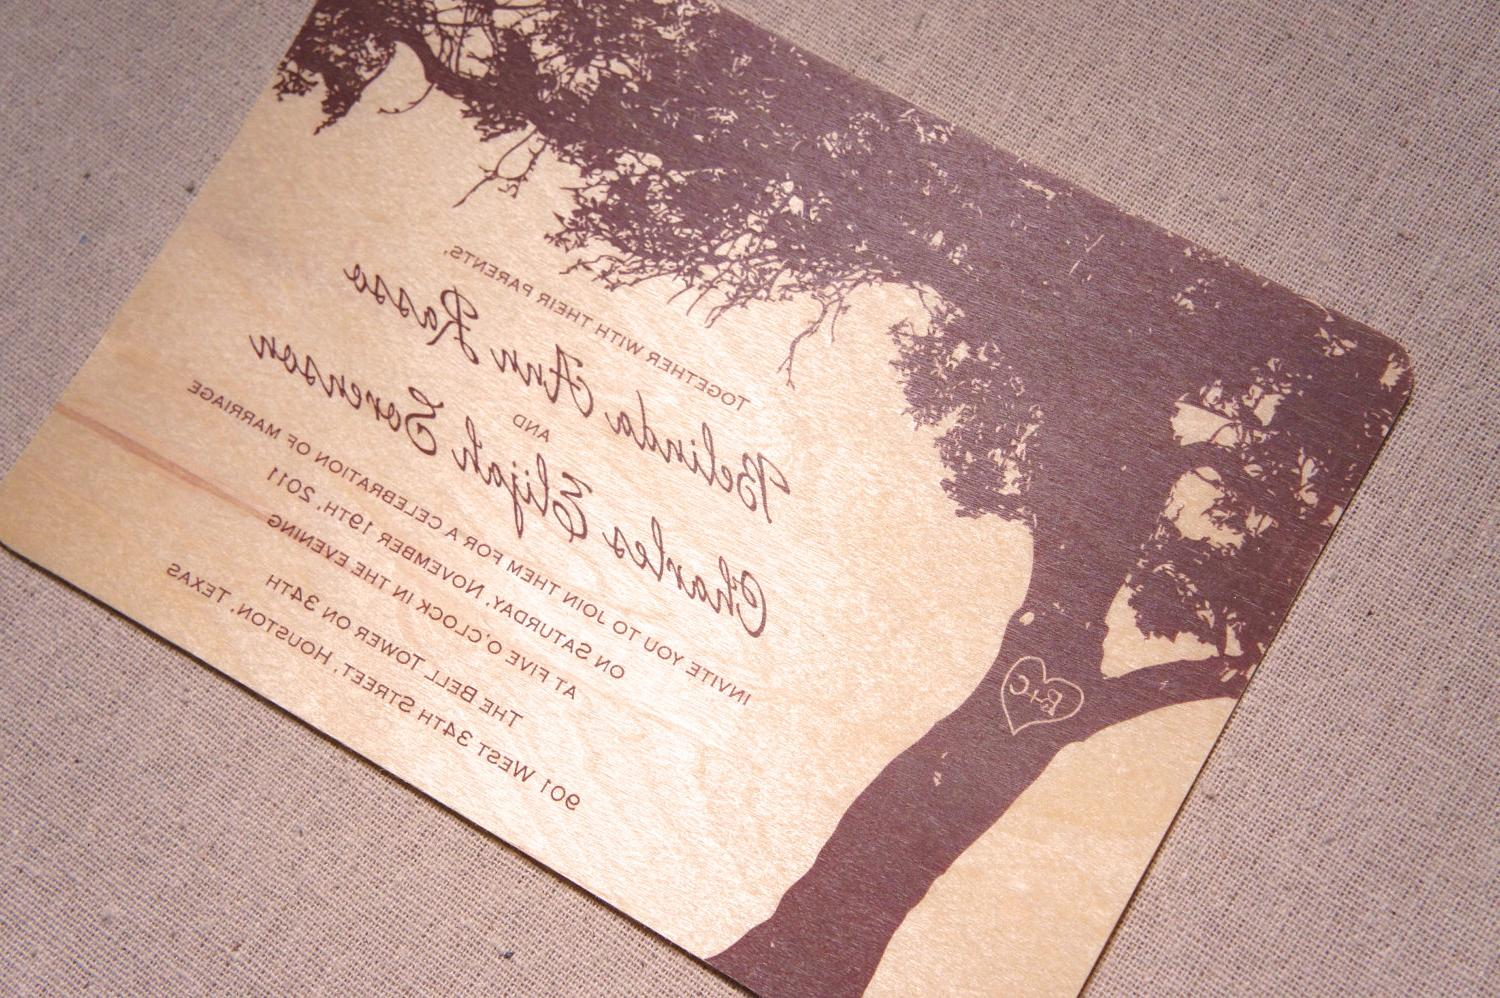 Real Wood Wedding Invitations - Oak Tree Silhouette. From woodchickstudios